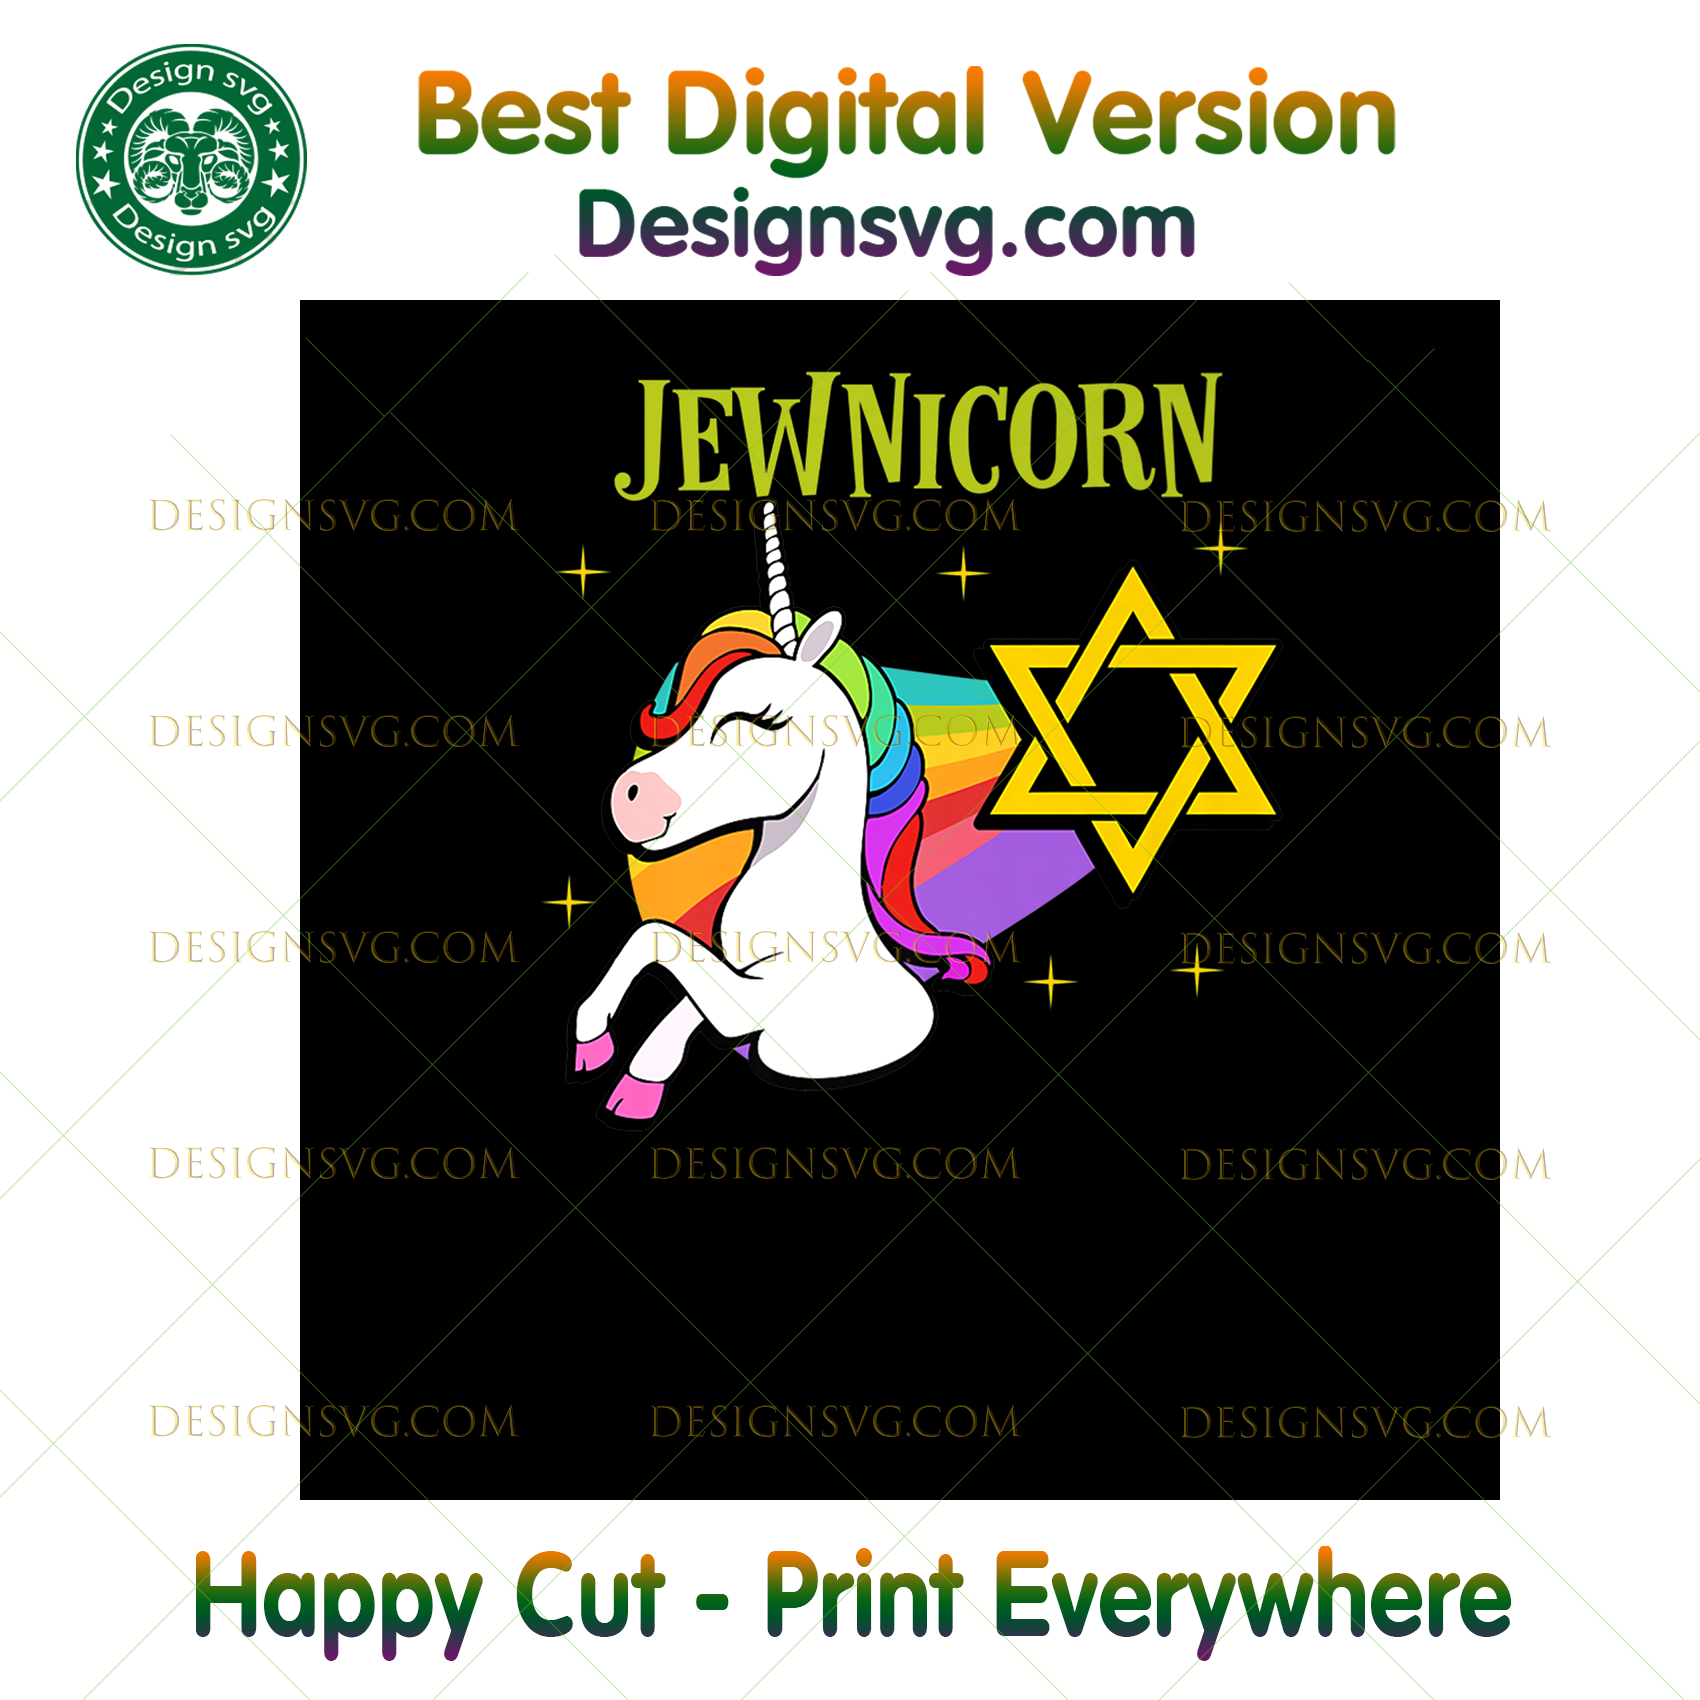 Rainbow Unicorn T- Halloween Costume Hanukkah Gift,Halloween png, Halloween shirt, Halloween Decor, Halloween Party, Halloween Design, Halloween Sublimation, Halloween Silhouette Files